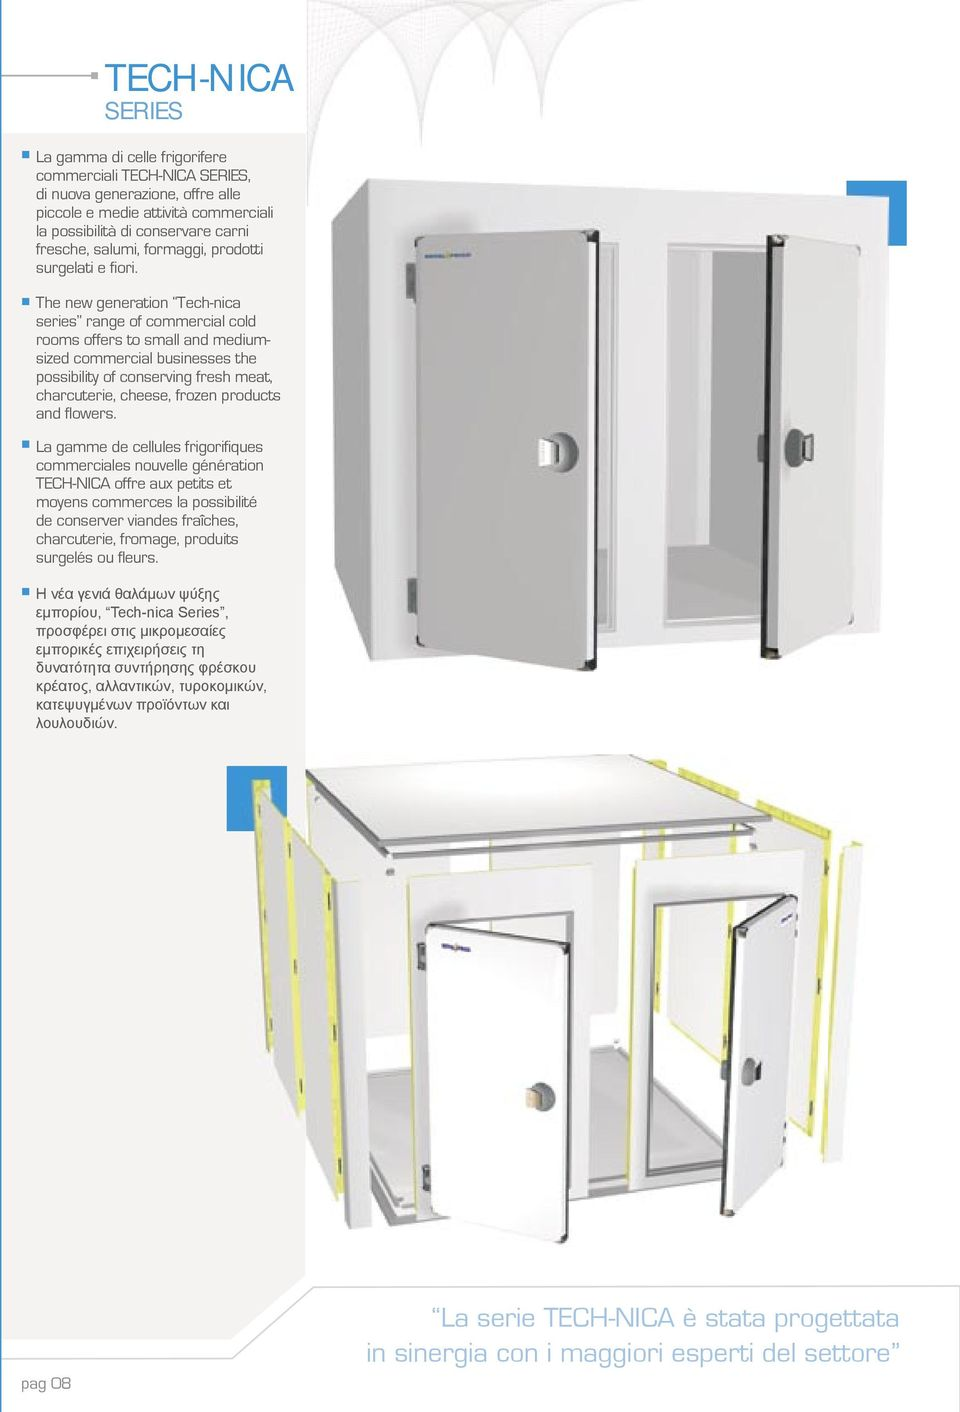 The new generation Tech-nica series range of commercial cold rooms offers to small and mediumsized commercial businesses the possibility of conserving fresh meat, charcuterie, cheese, frozen products